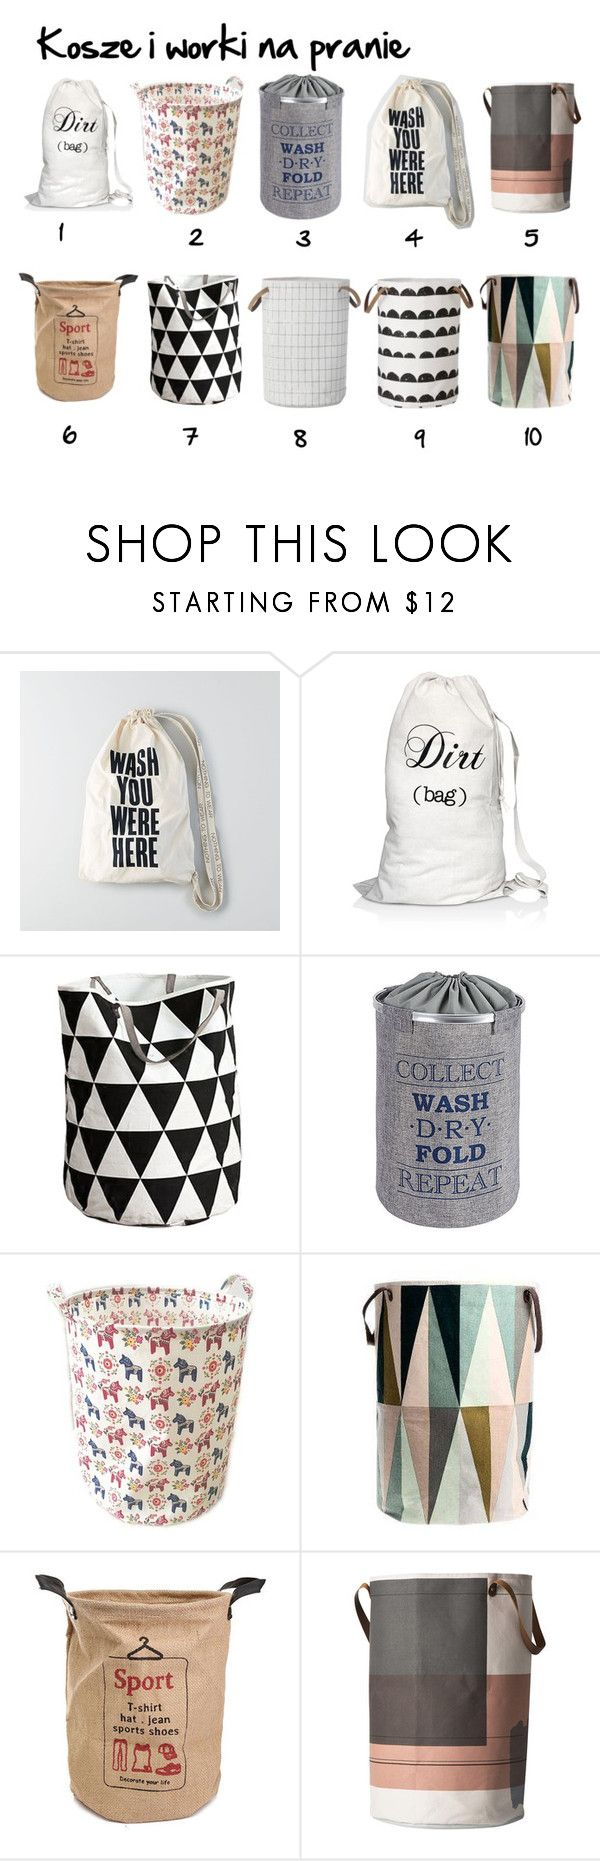 """""""laundry day :)"""" by izostworekblogspot on Polyvore featuring interior, interiors, interior design, dom, home decor, interior decorating, American Eagle Outfitters, Bag-All i ferm LIVING"""